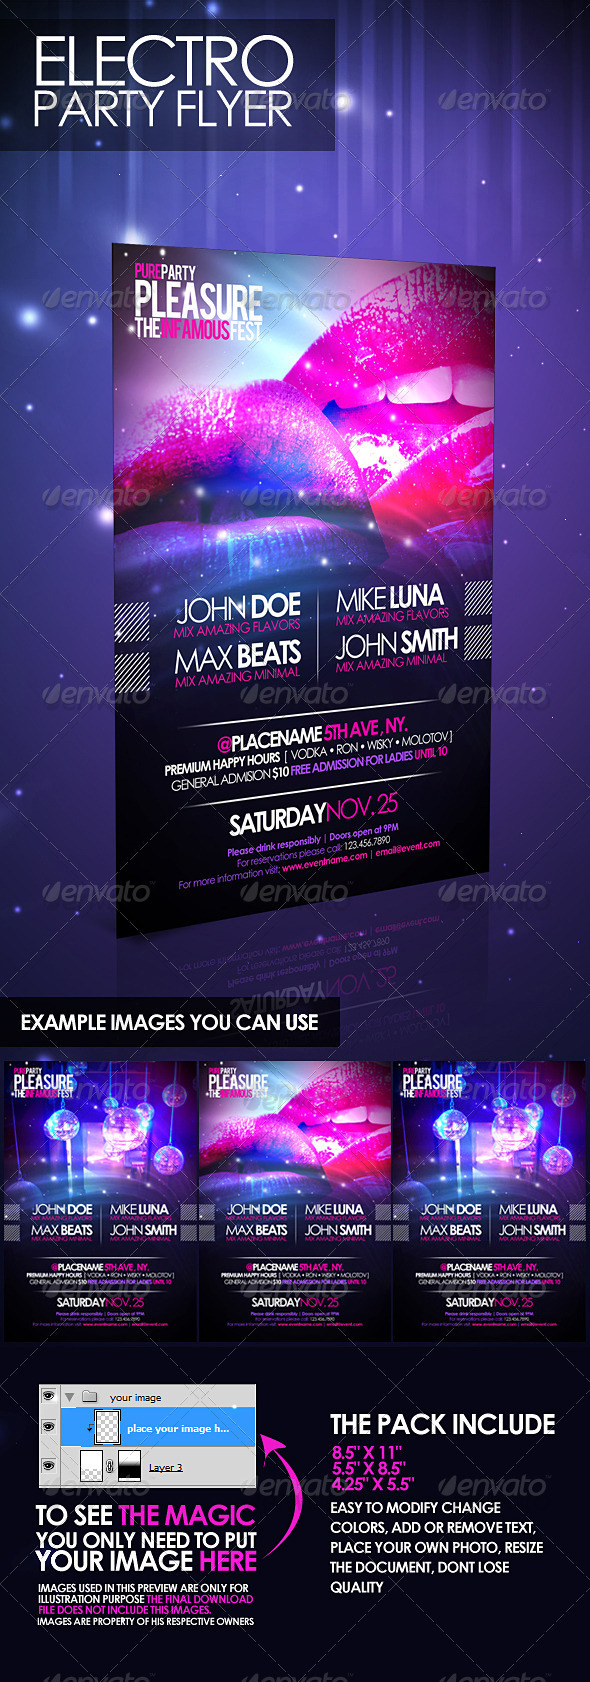 Electro Party Flyer - Clubs & Parties Events